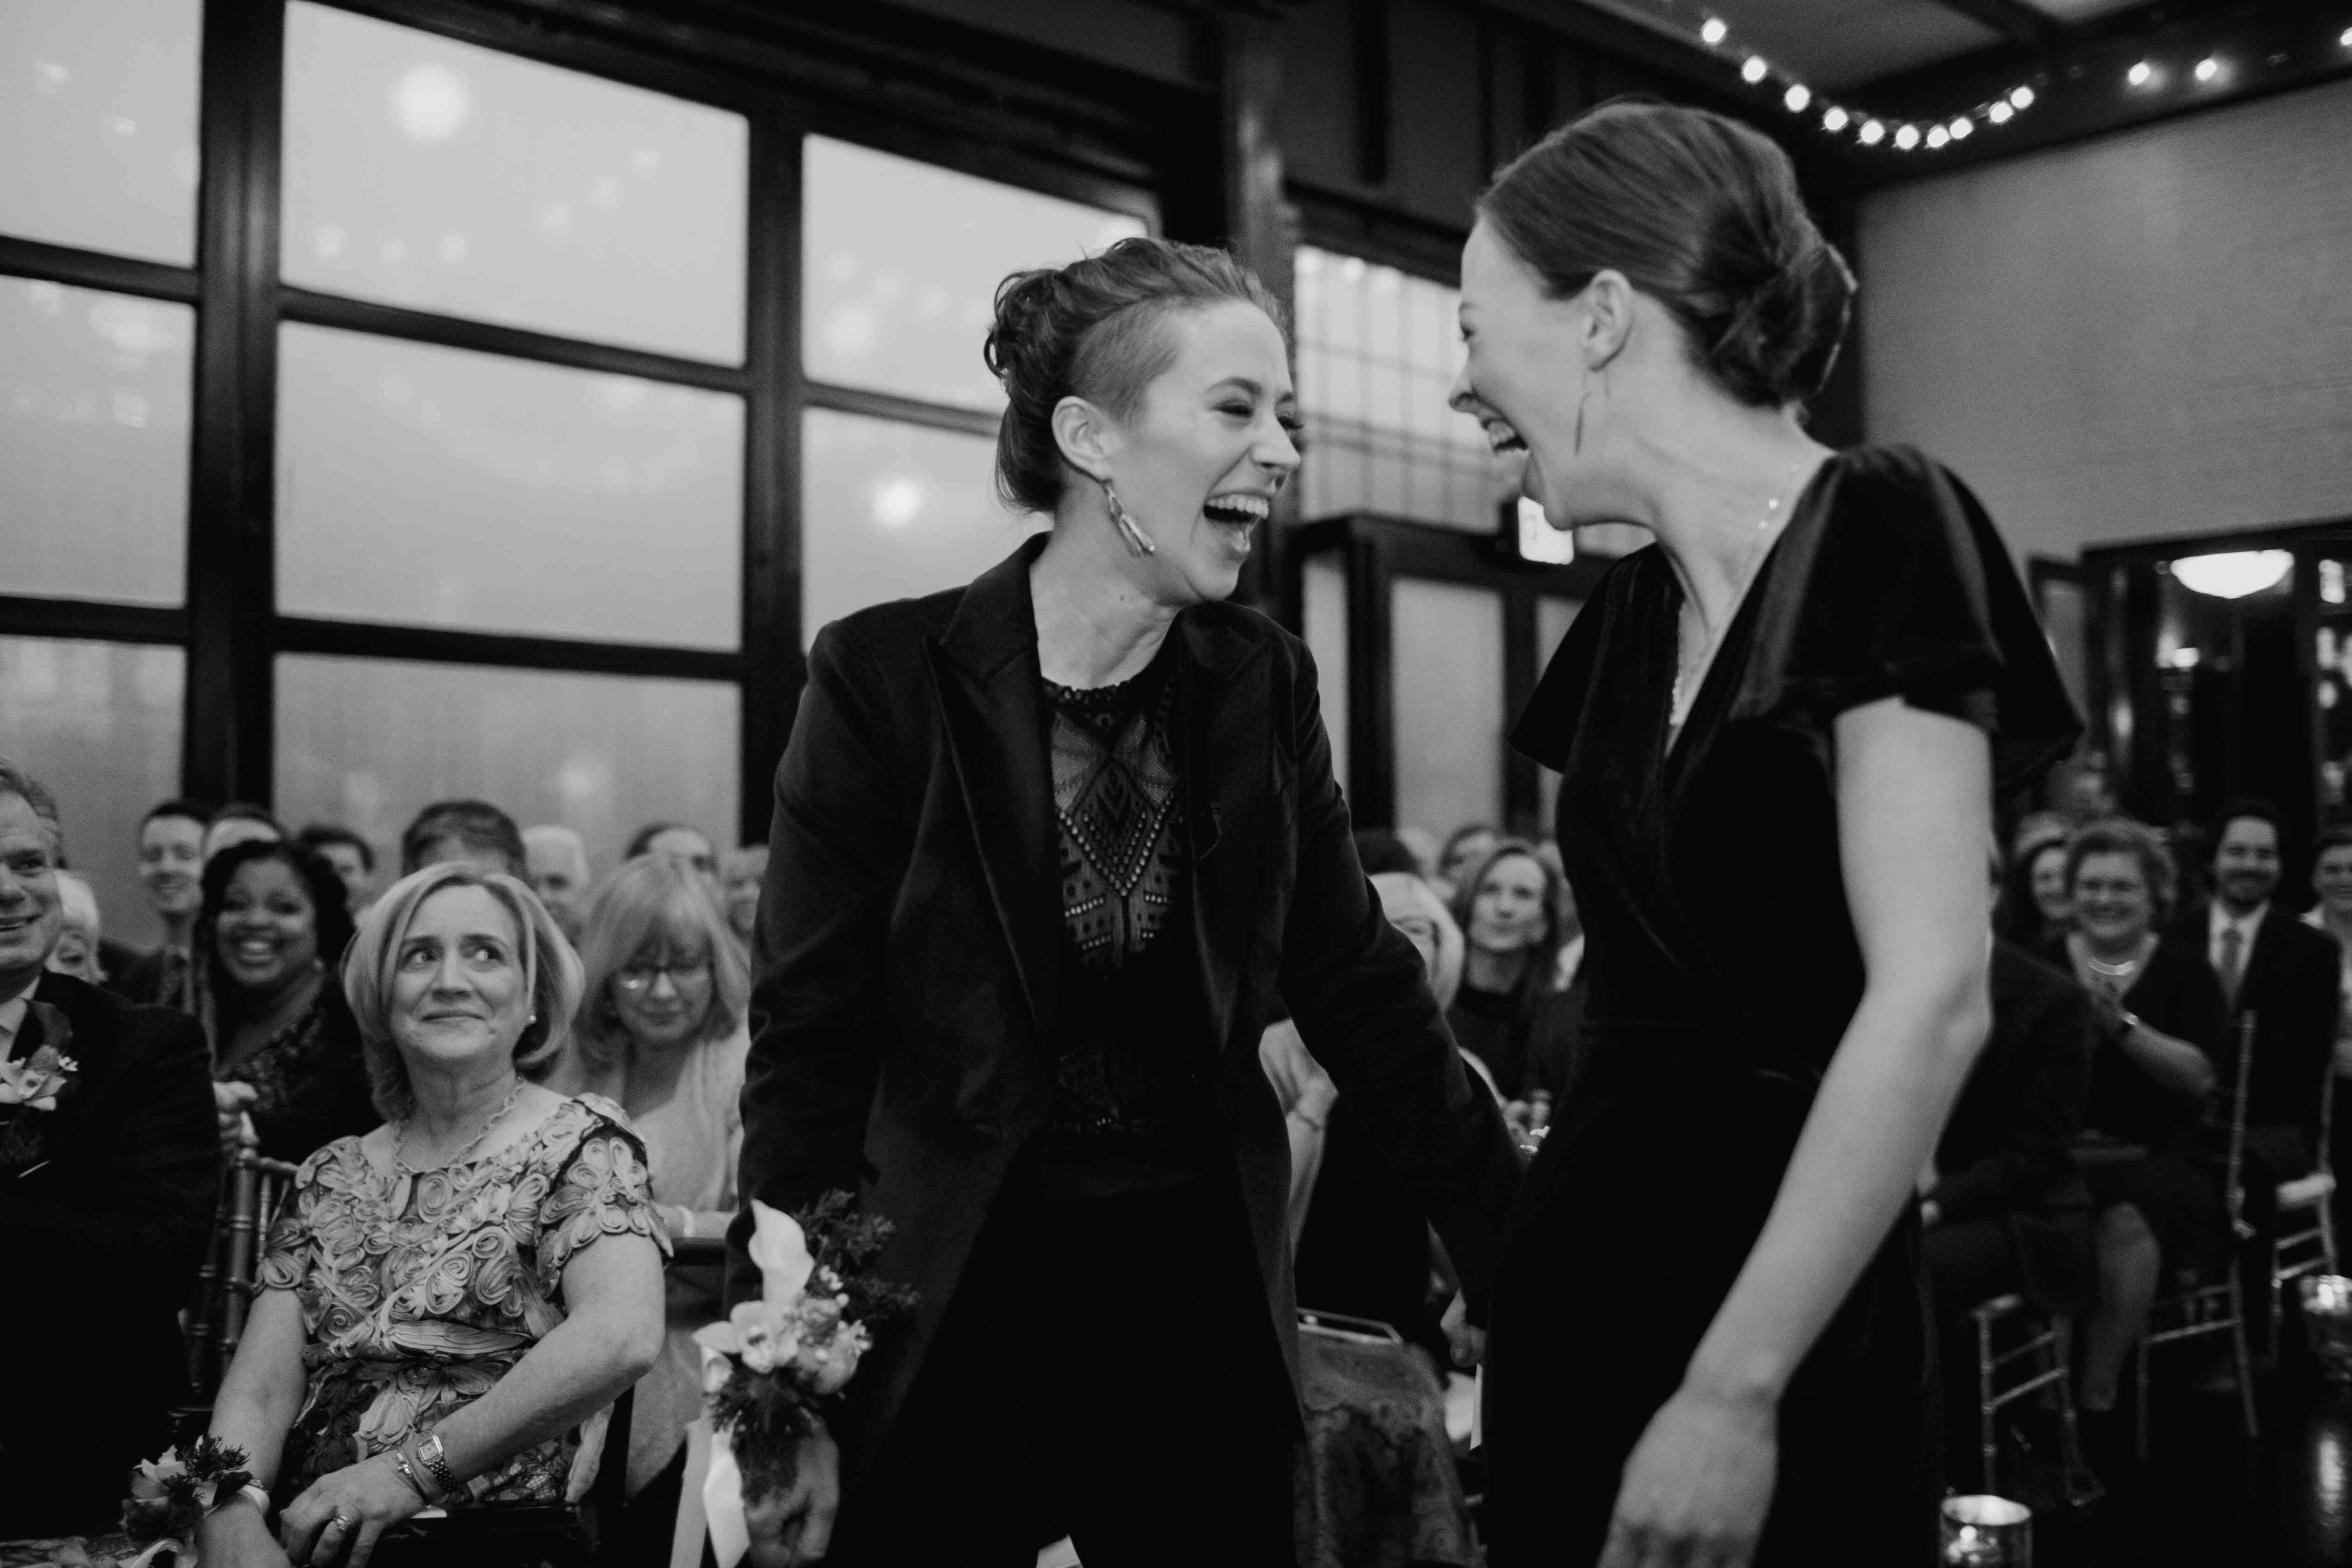 Katie and her sister share a laugh